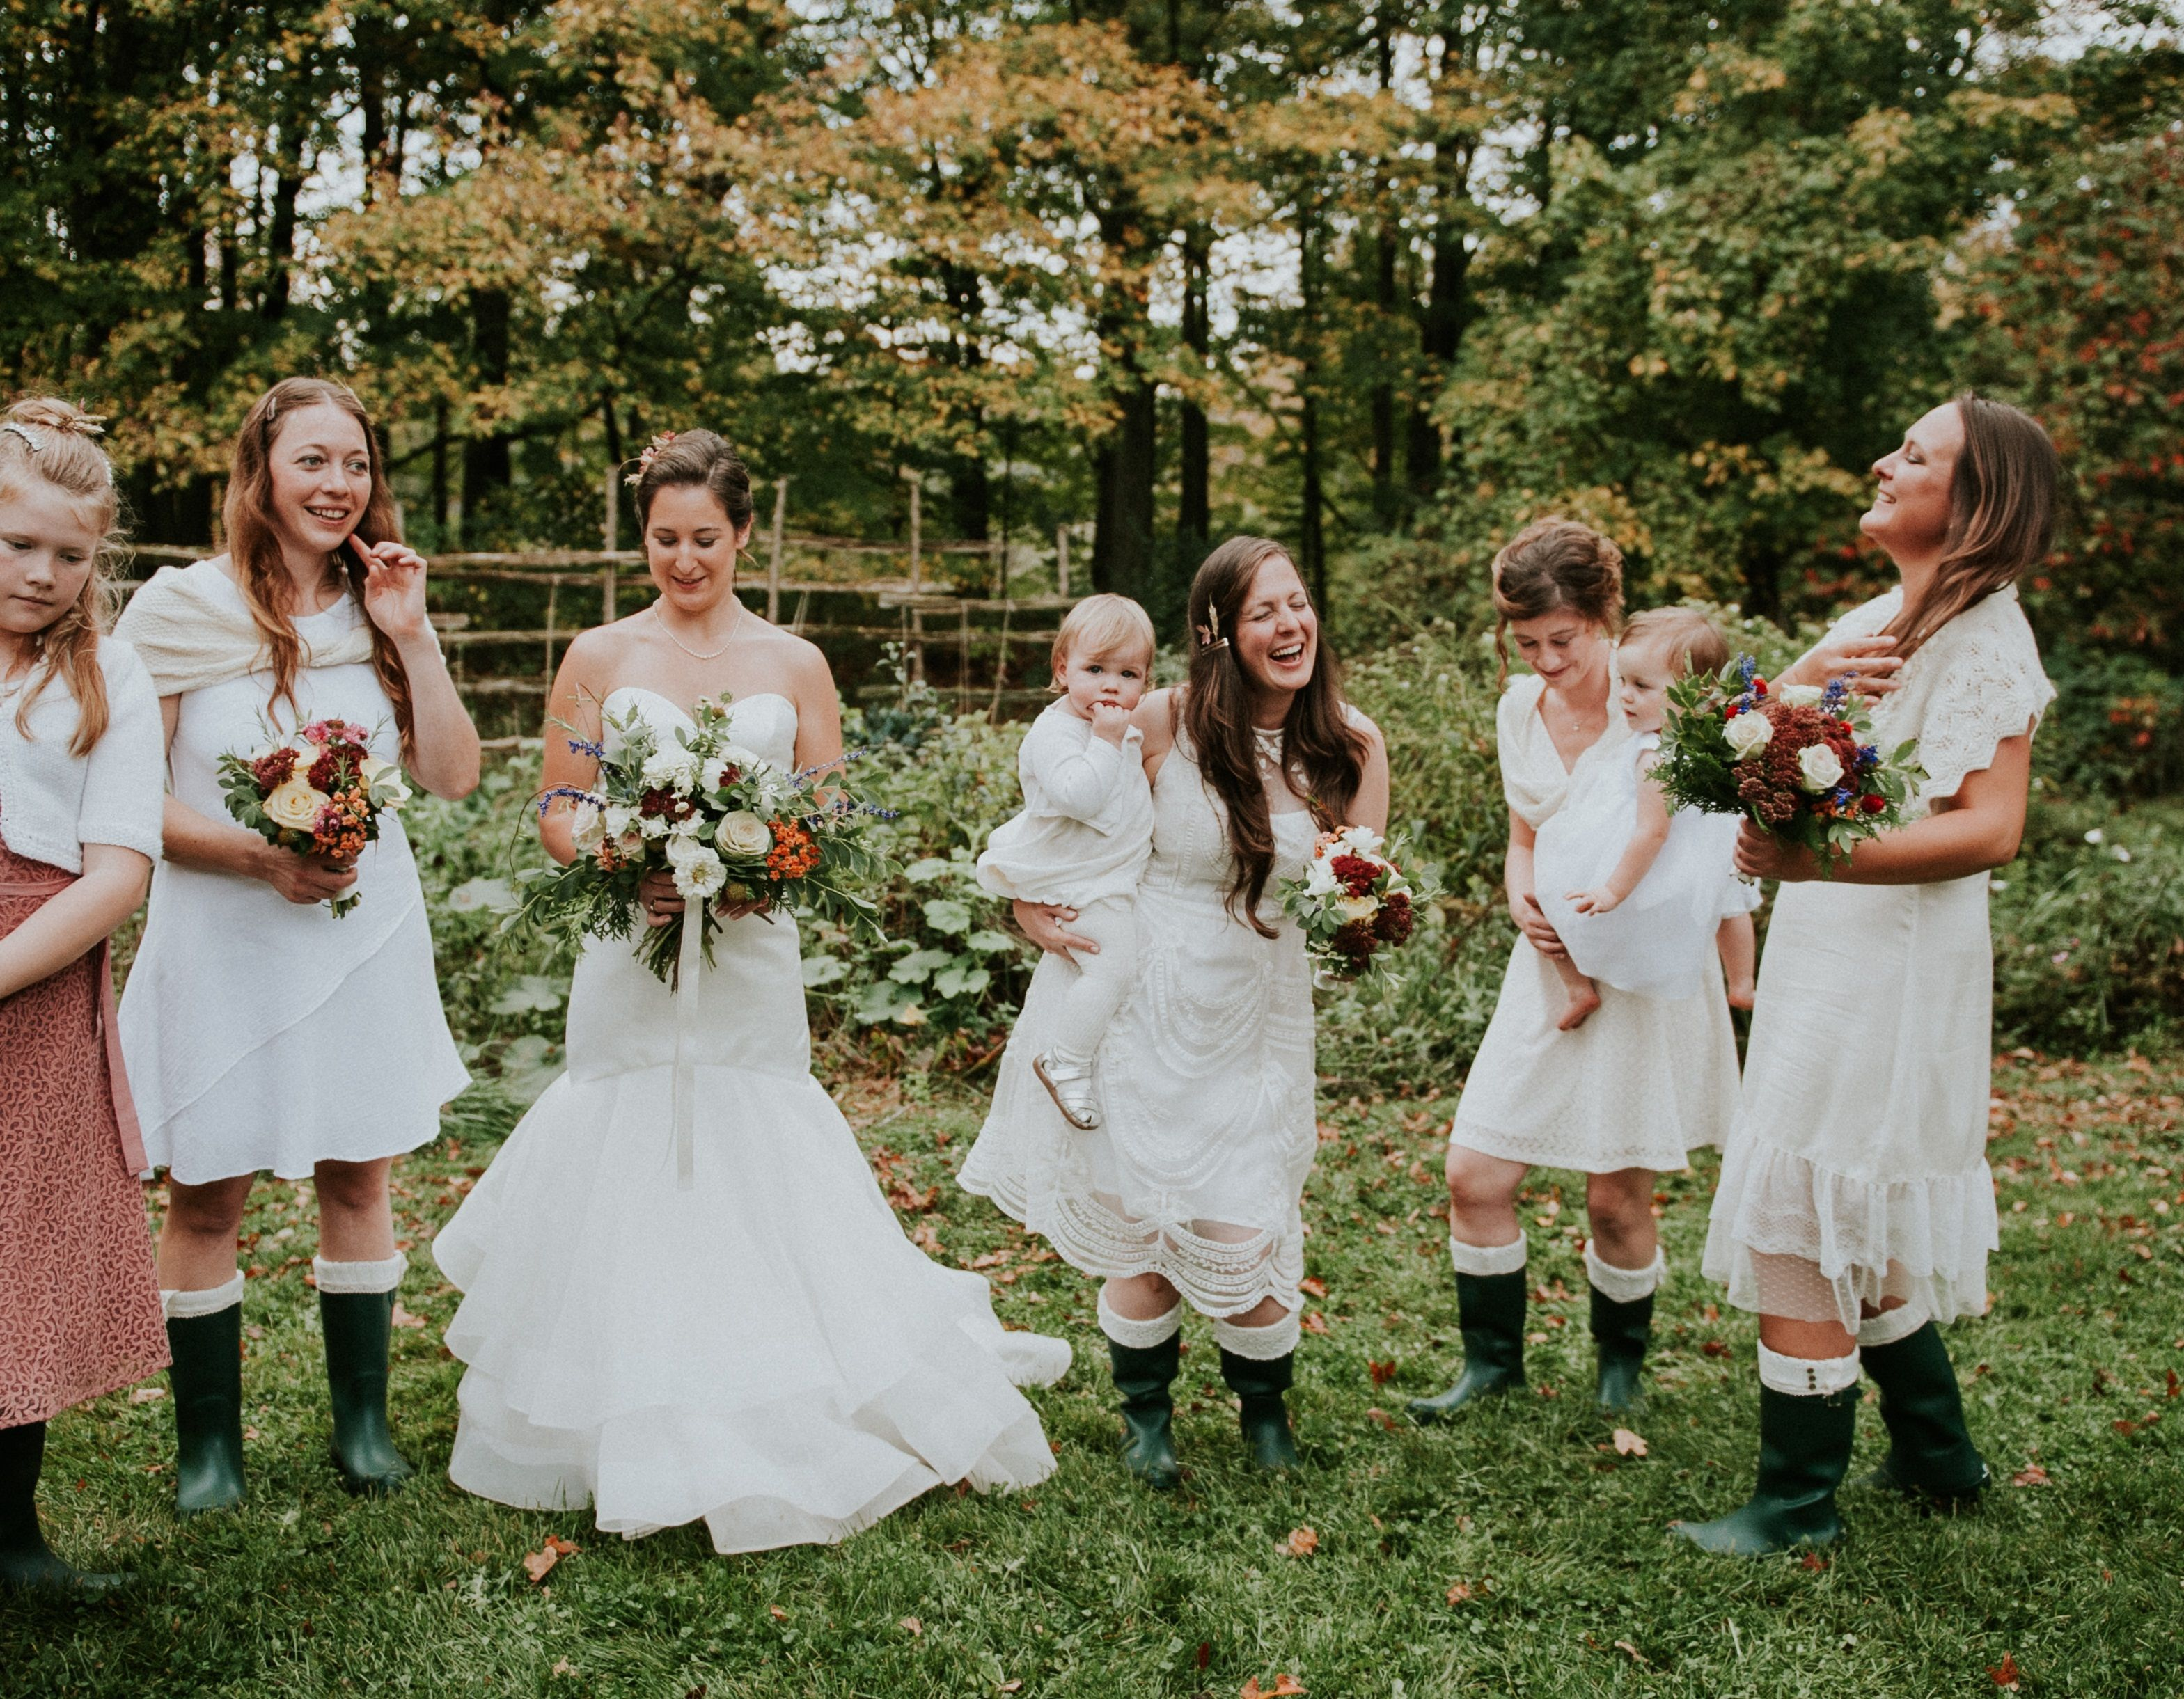 Rustic country wedding ivory bridesmaid dress ideas hunter welly rustic country wedding ivory bridesmaid dress ideas hunter welly forest green boots fall ombrellifo Images